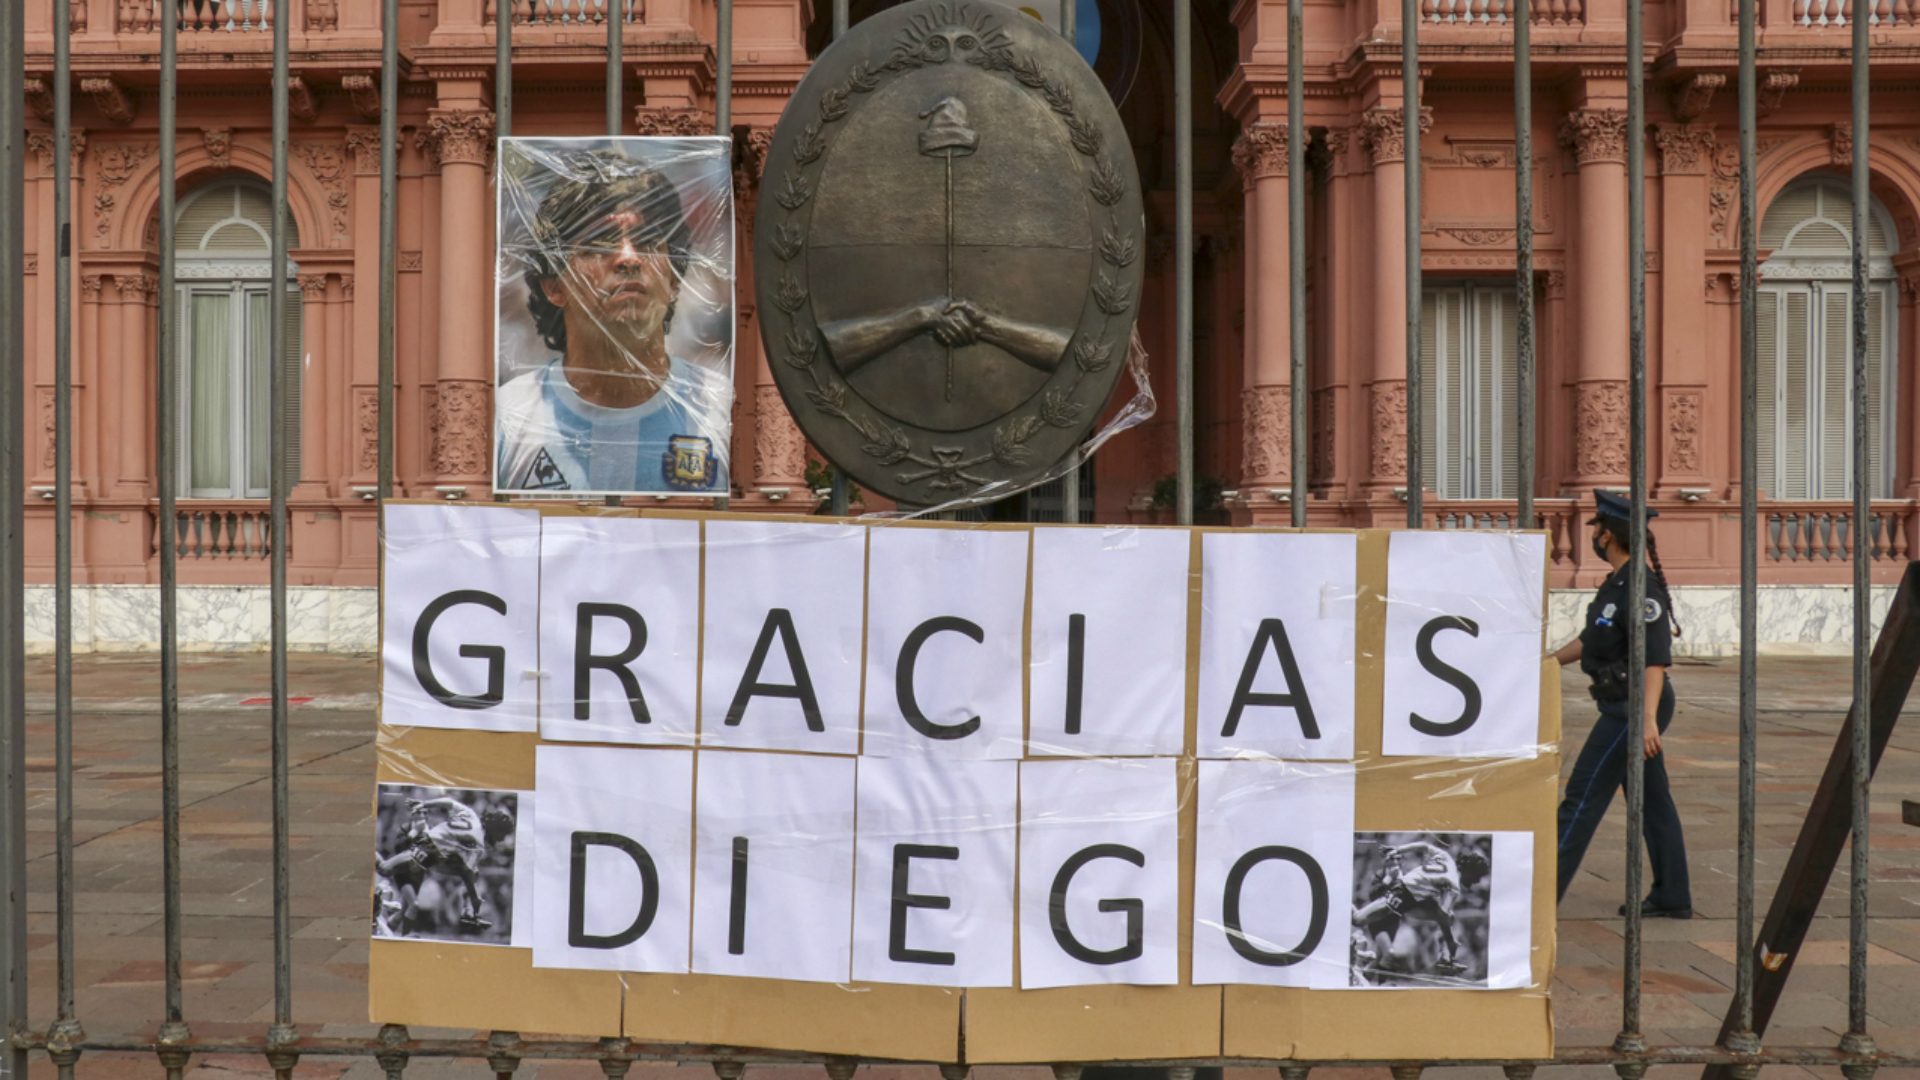 Diego Maradona dies: Fans parade past coffin as Buenos Aires reels from Argentina great's demise